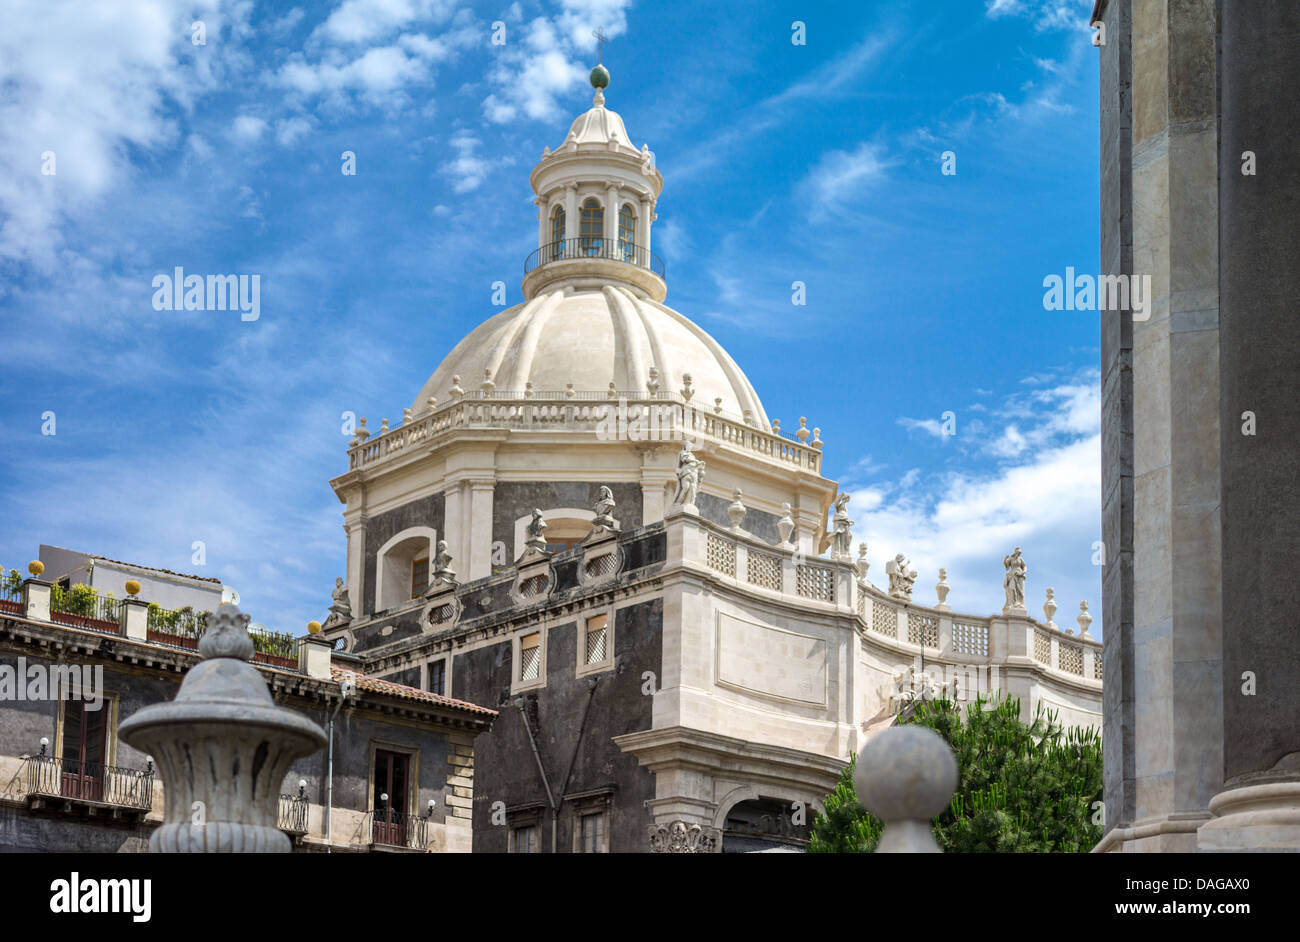 Italy, Sicily, Catania, the Santa Agata dome seen from Piazza Duomo - Stock Image